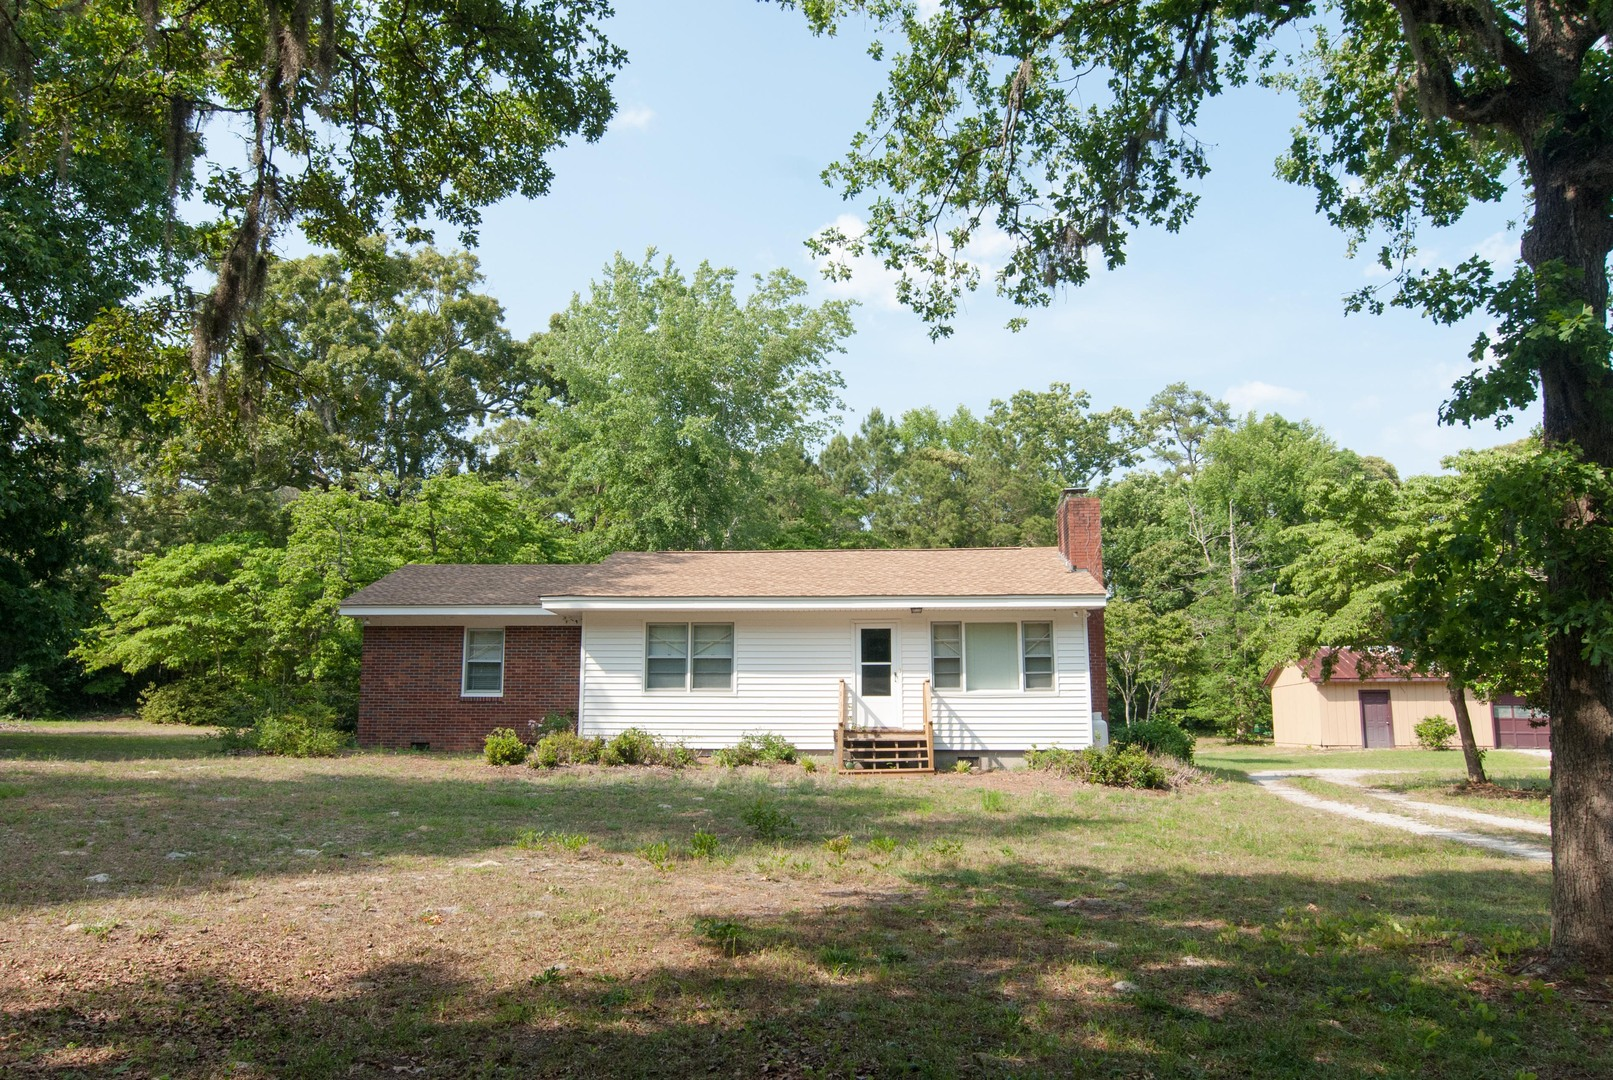 Home for rent in Wilmington, North Carolina, listed by Bryant Real Estate